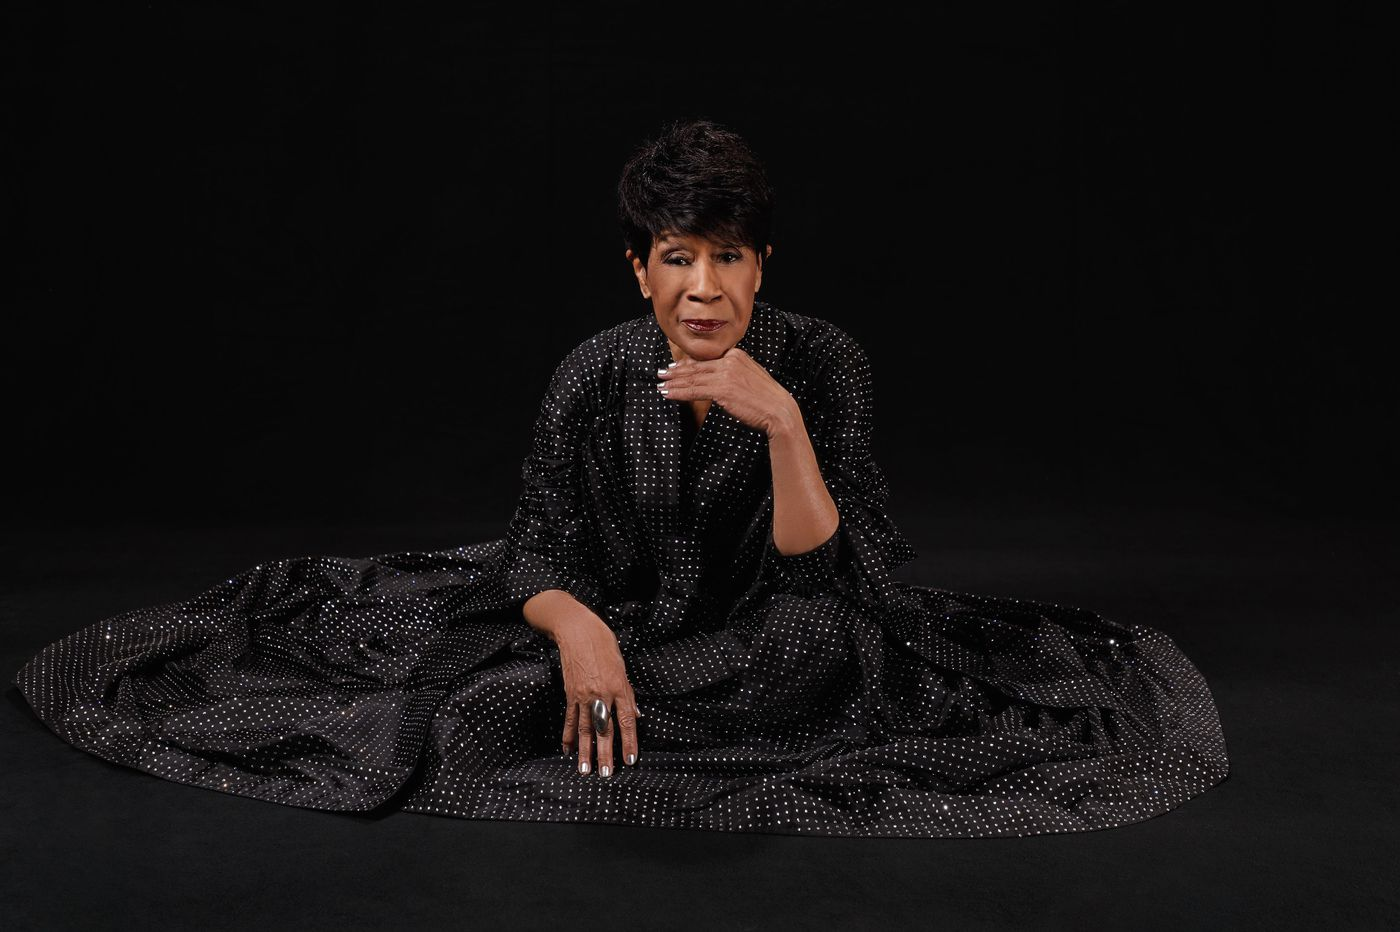 Bettye LaVette's new 'Blackbirds' album is searingly powerful, with deeply personal readings of 'Strange Fruit' and more